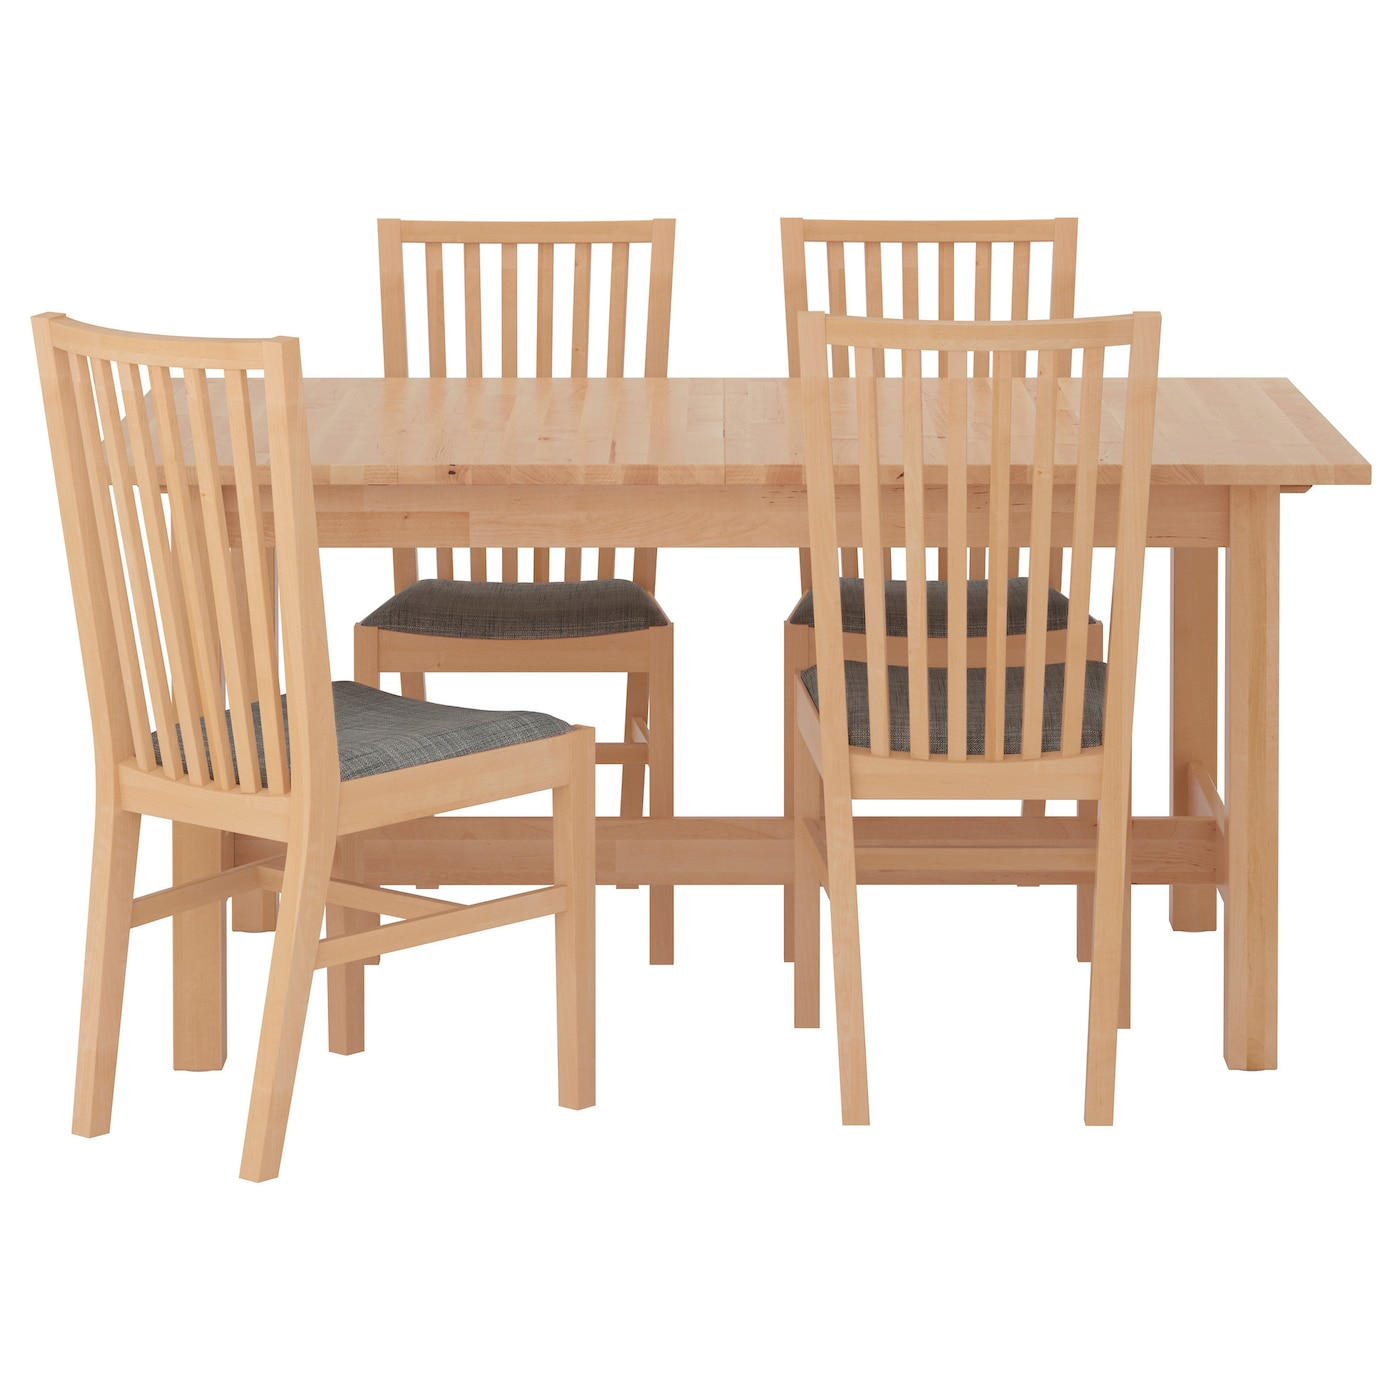 Norden norrn s table and 4 chairs birch isunda grey 155 cm ikea - Birch kitchen table ...